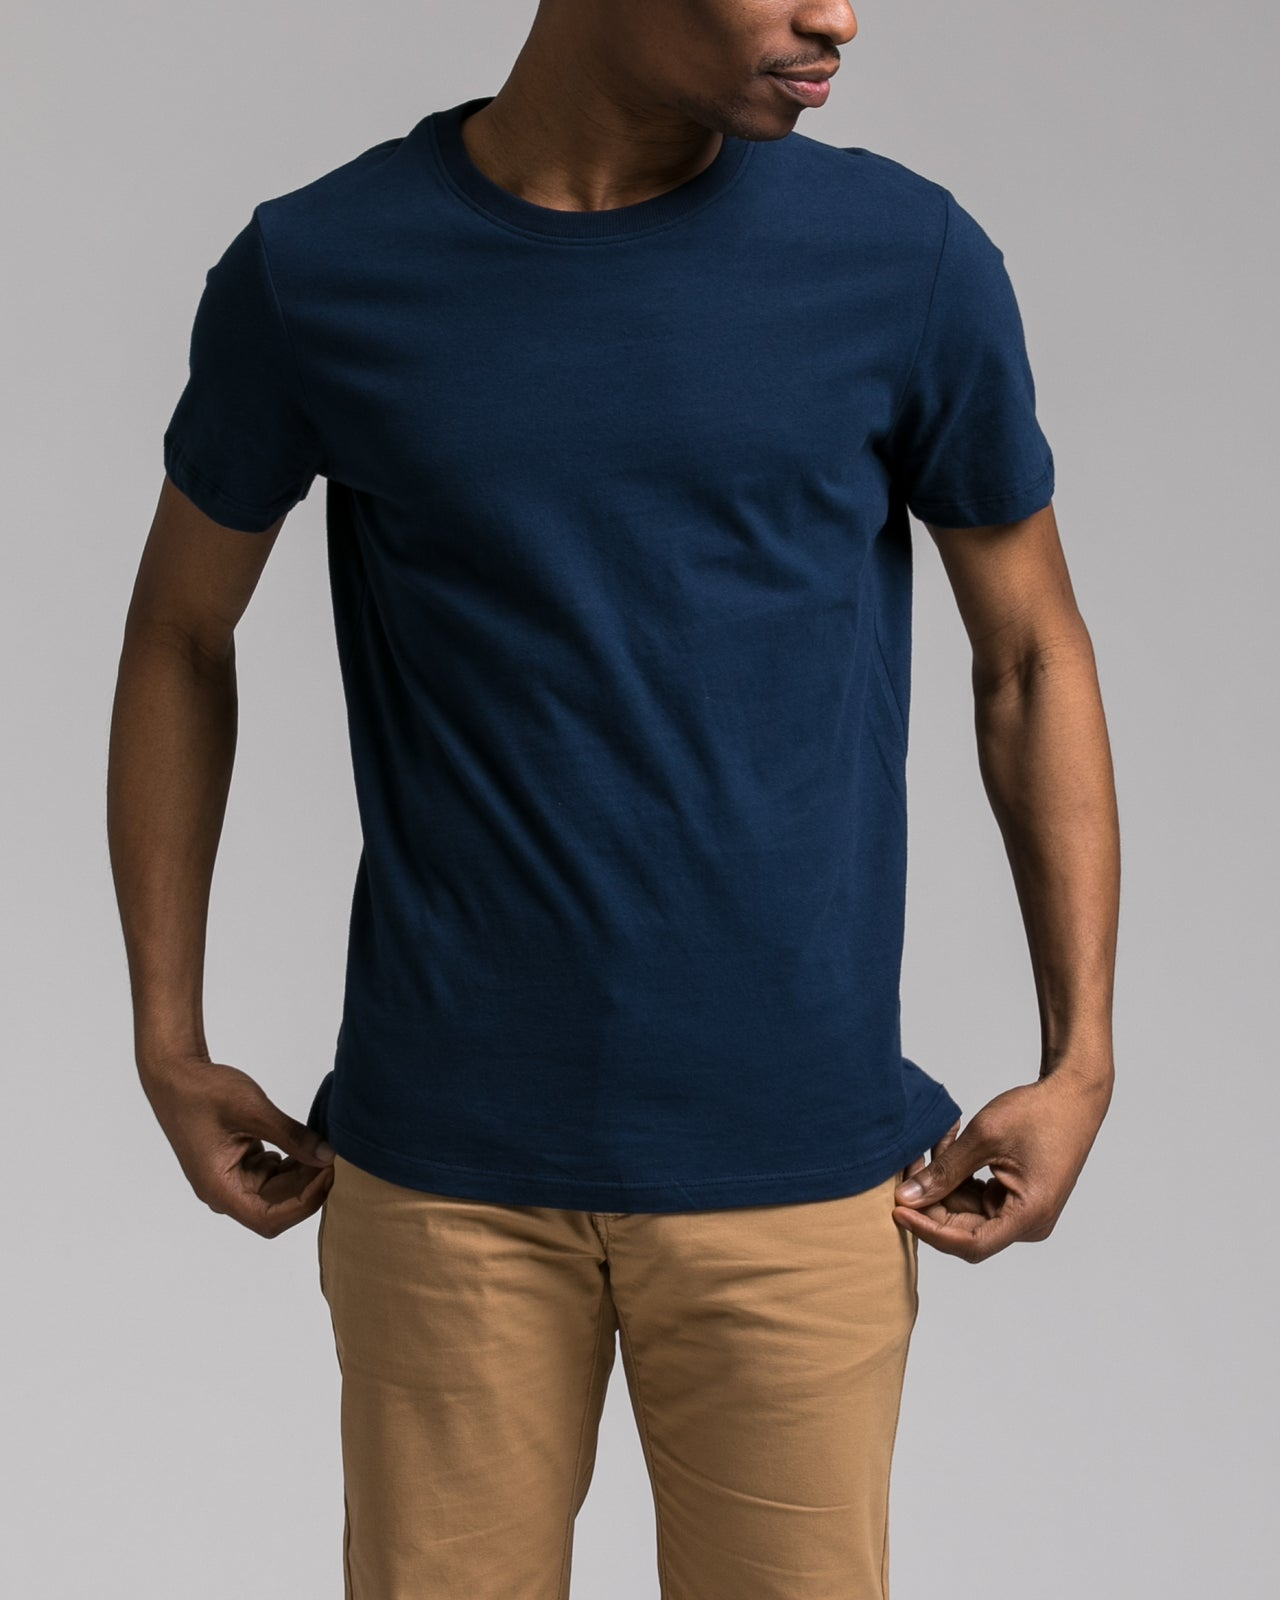 Slim Tee - Color: Navy | Blue